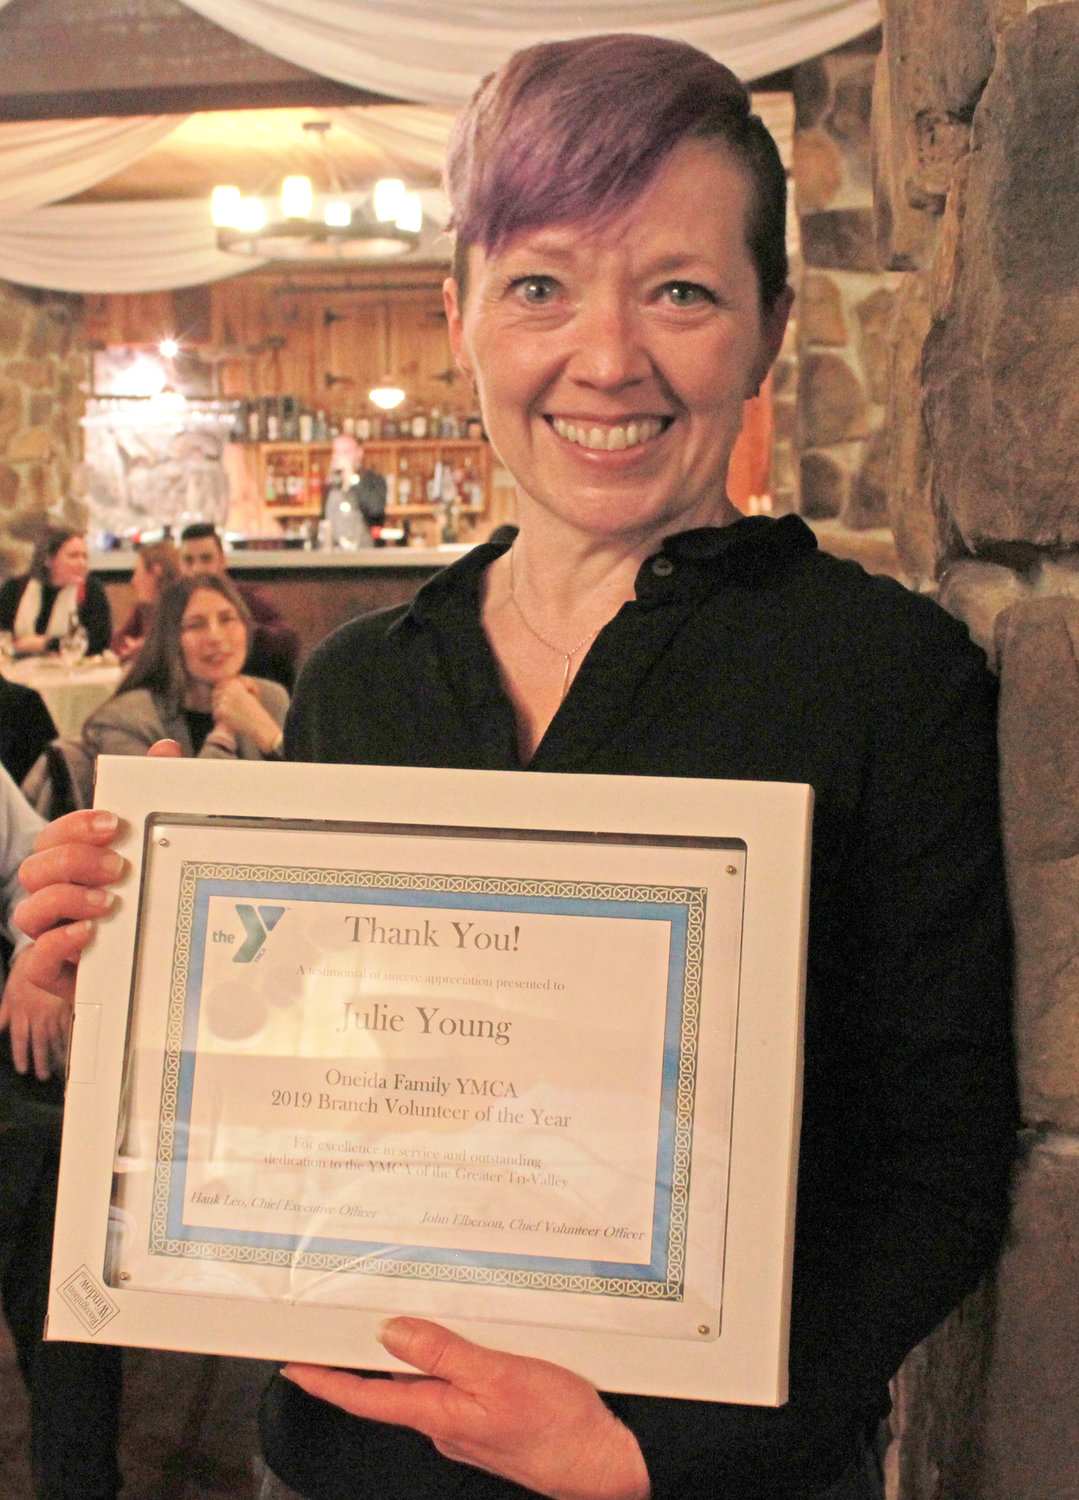 ONEIDA VOLUNTEER — Julie Young was awarded the Oneida Volunteer of the Year at the annual YMCA 2020 Recognition Program on Wednesday.